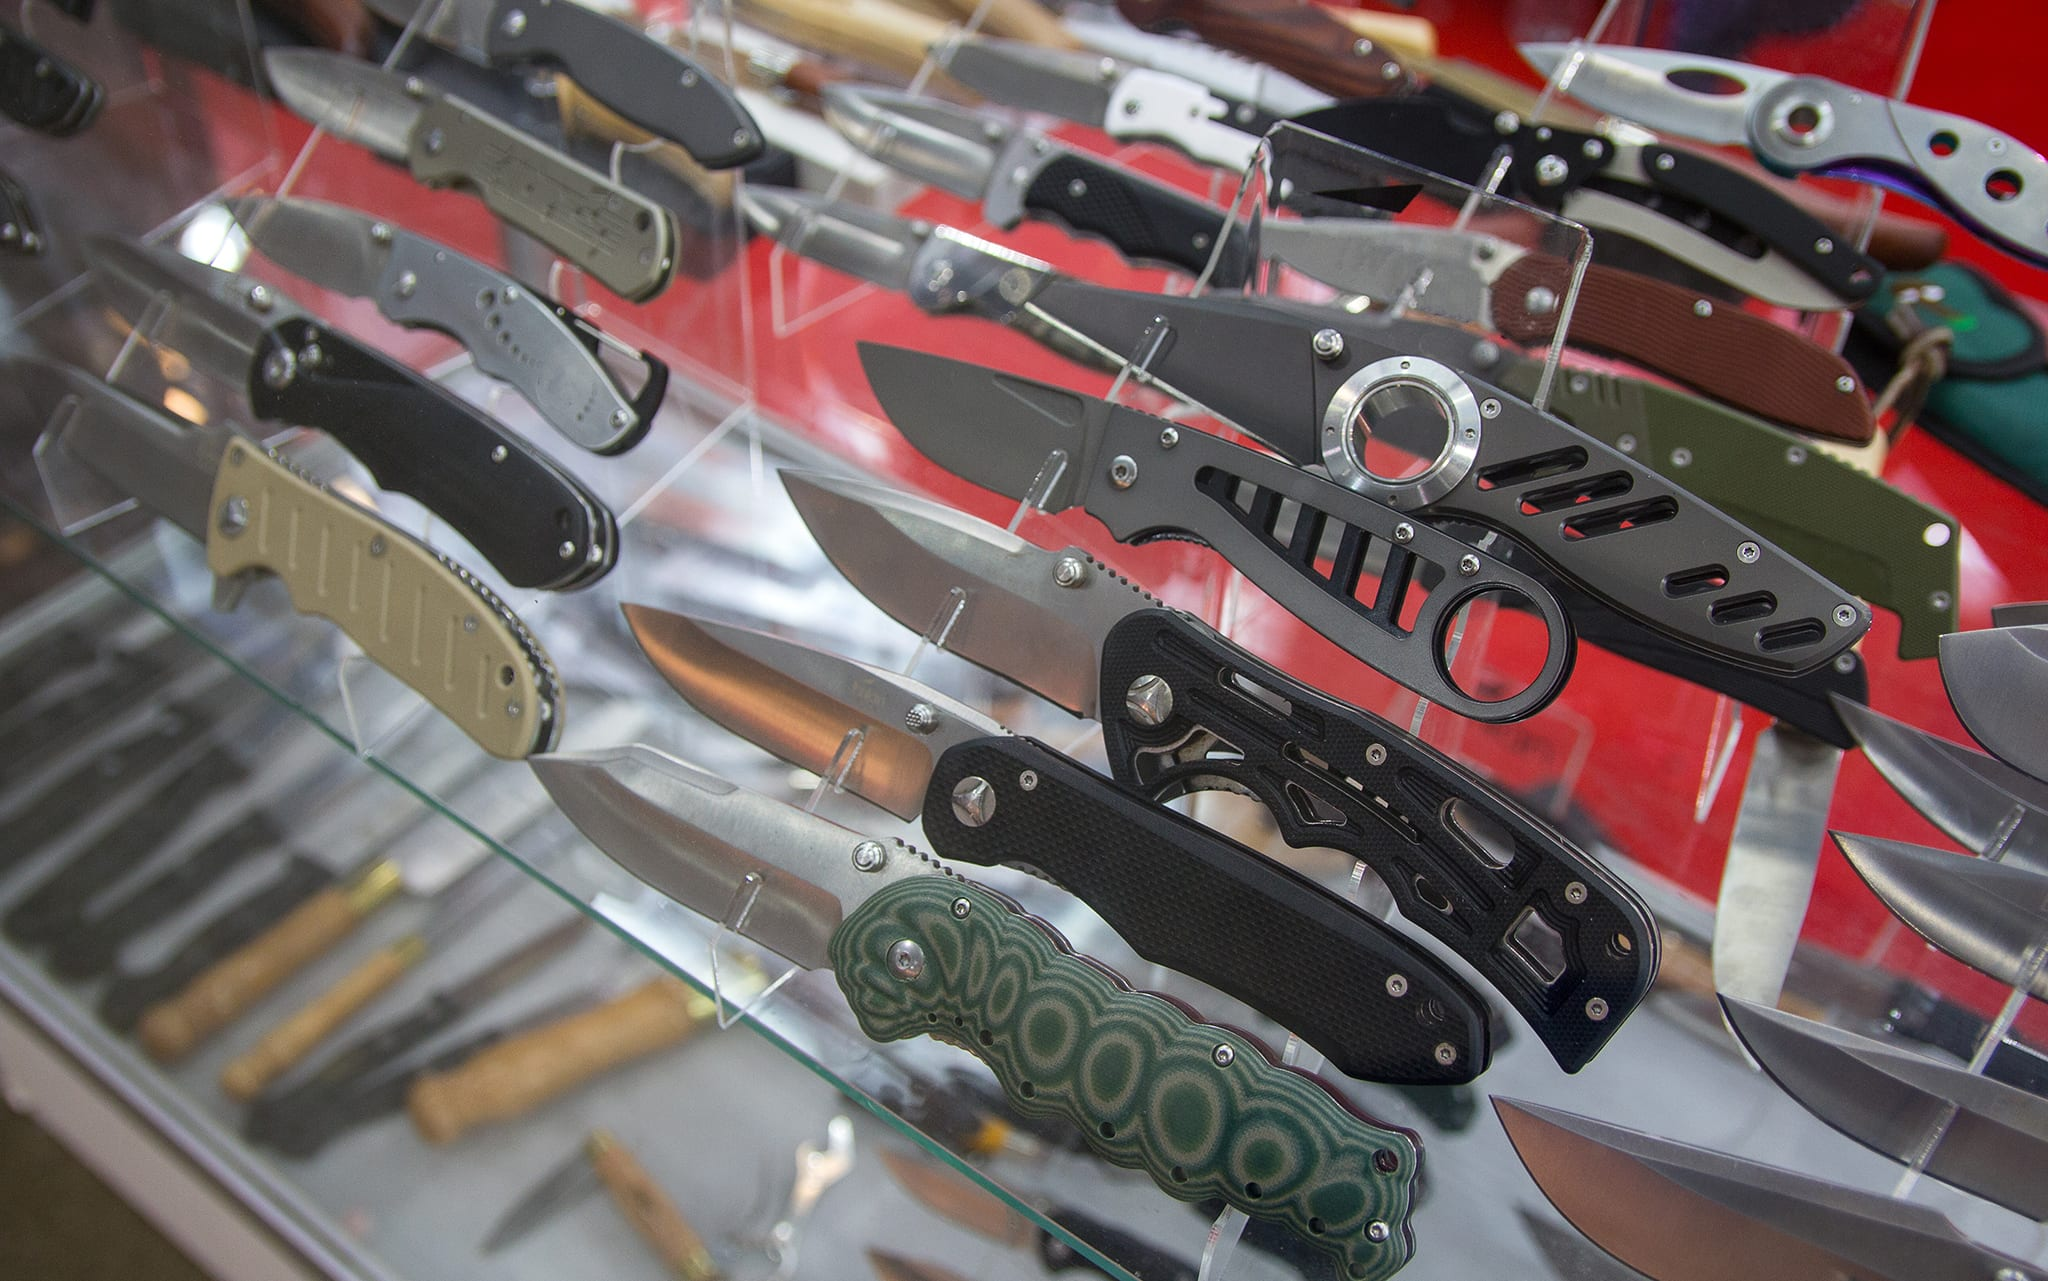 ramzs has your basic and your utility pocket knives